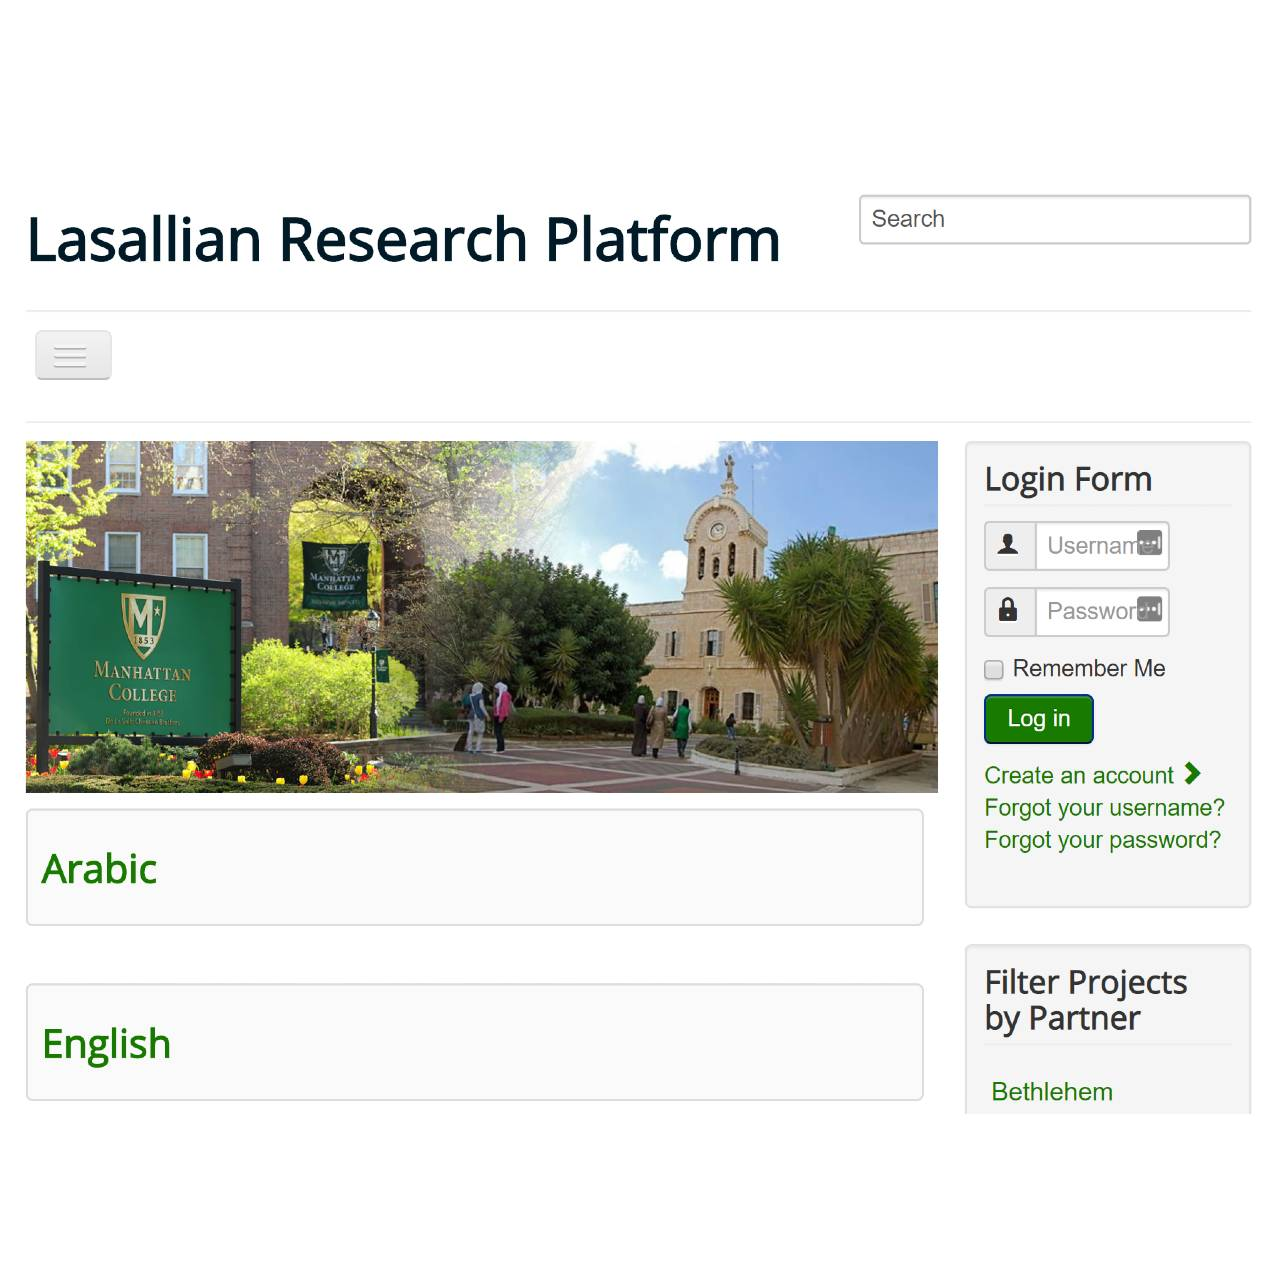 LASALLIAN RESEARCH PLATFORM